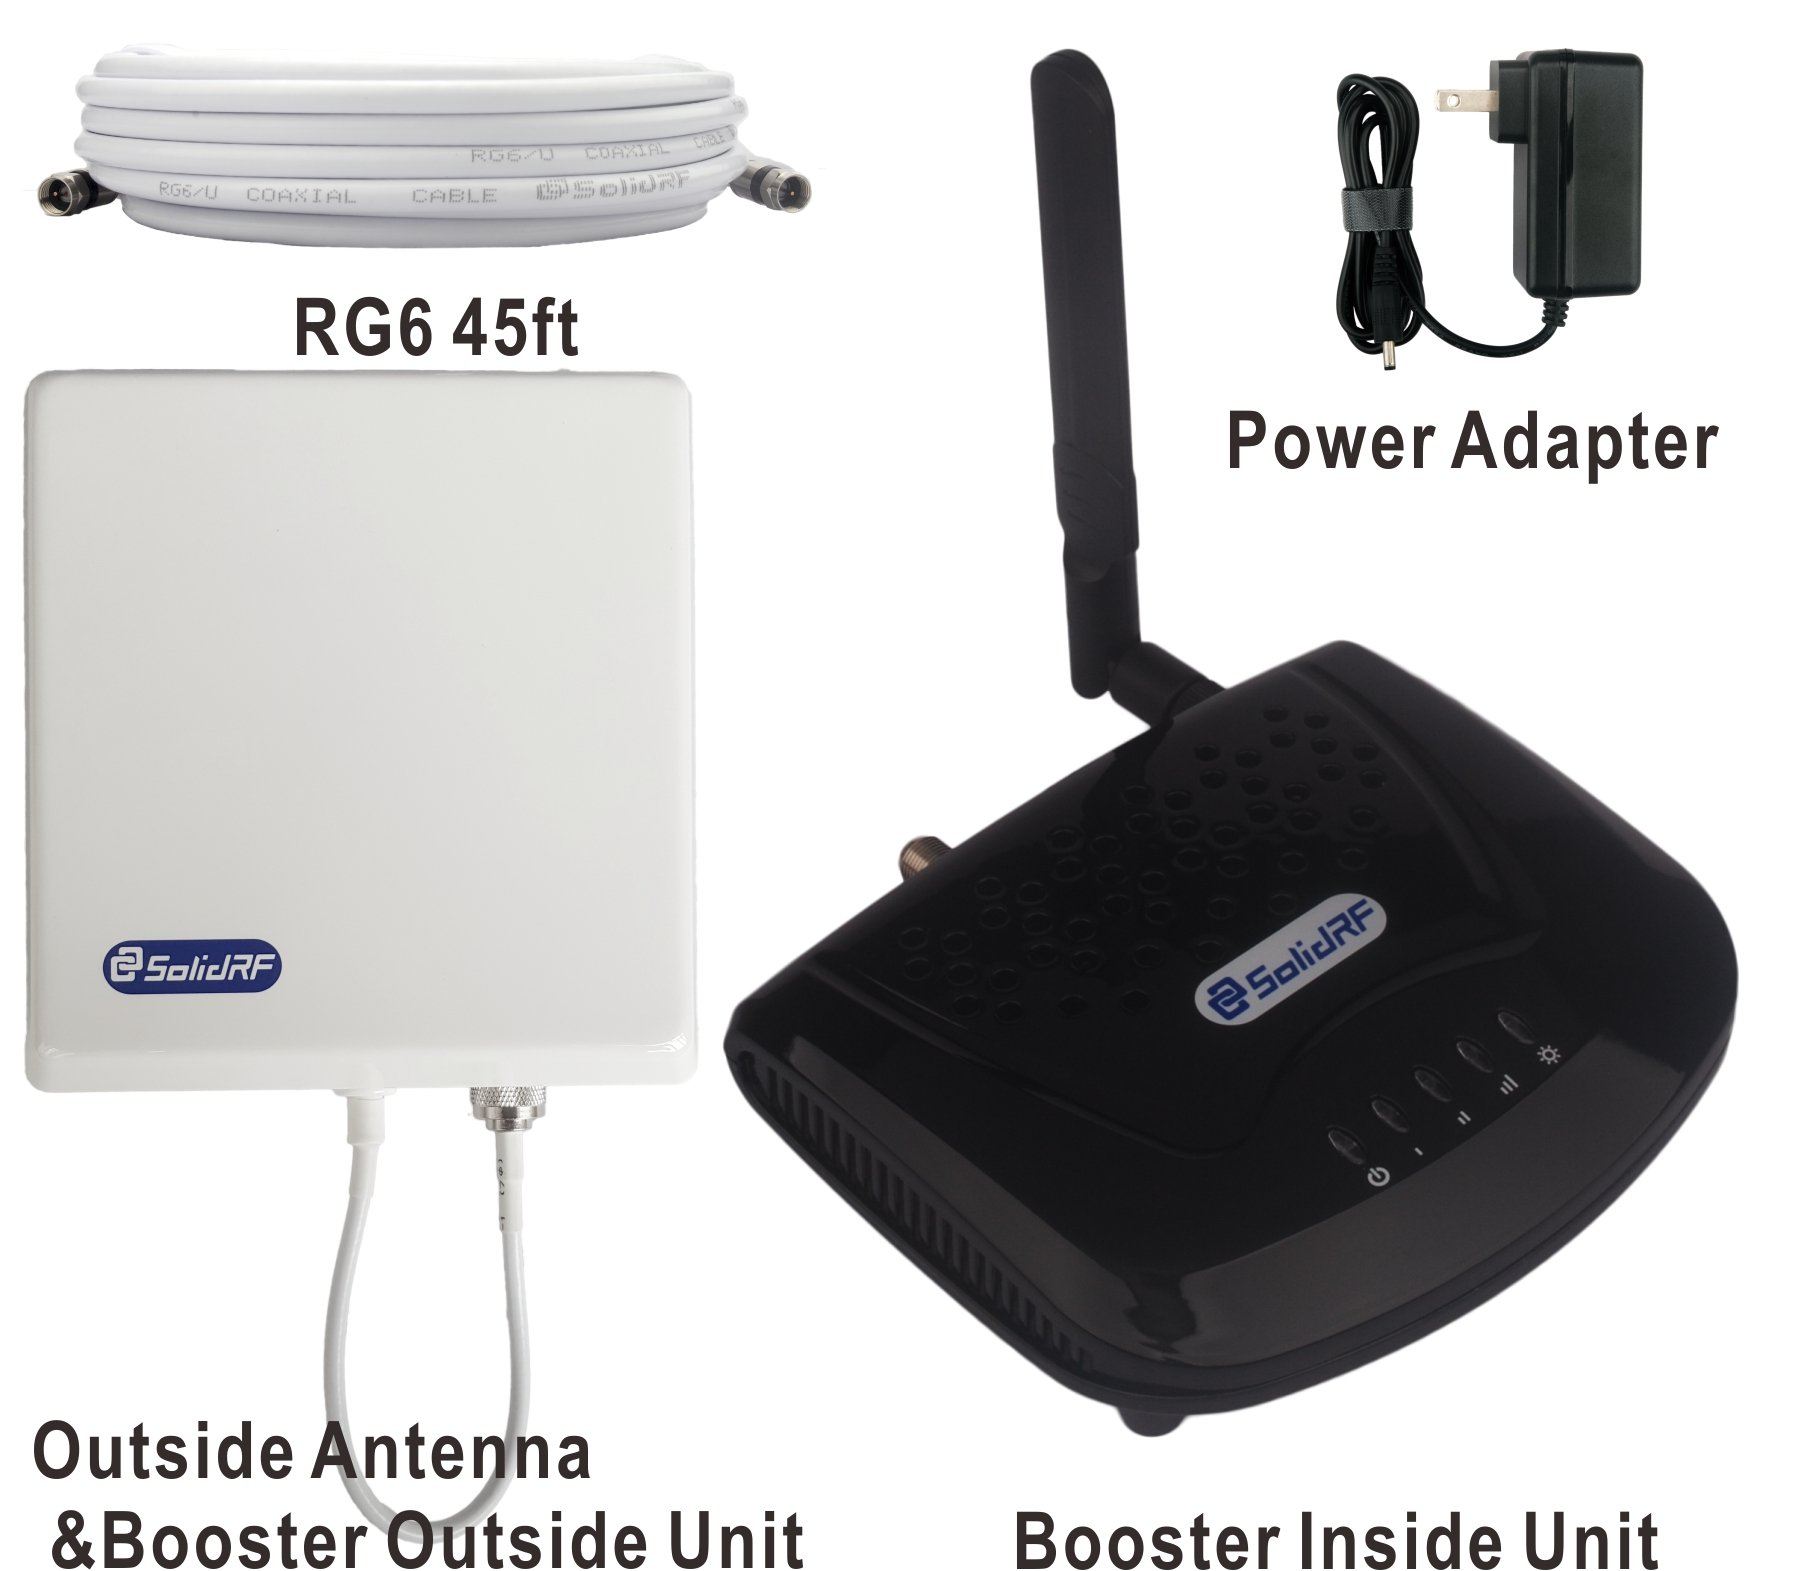 SolidRF SOHO Tri-Band AT&T, T-Mobile 4G/LTE Cell Phone Booster For All Carriers 2G/3G and AT&T, T-Mobile 4G LTE, 700(Band12)/850/1900 MHz by SolidRF (Image #2)